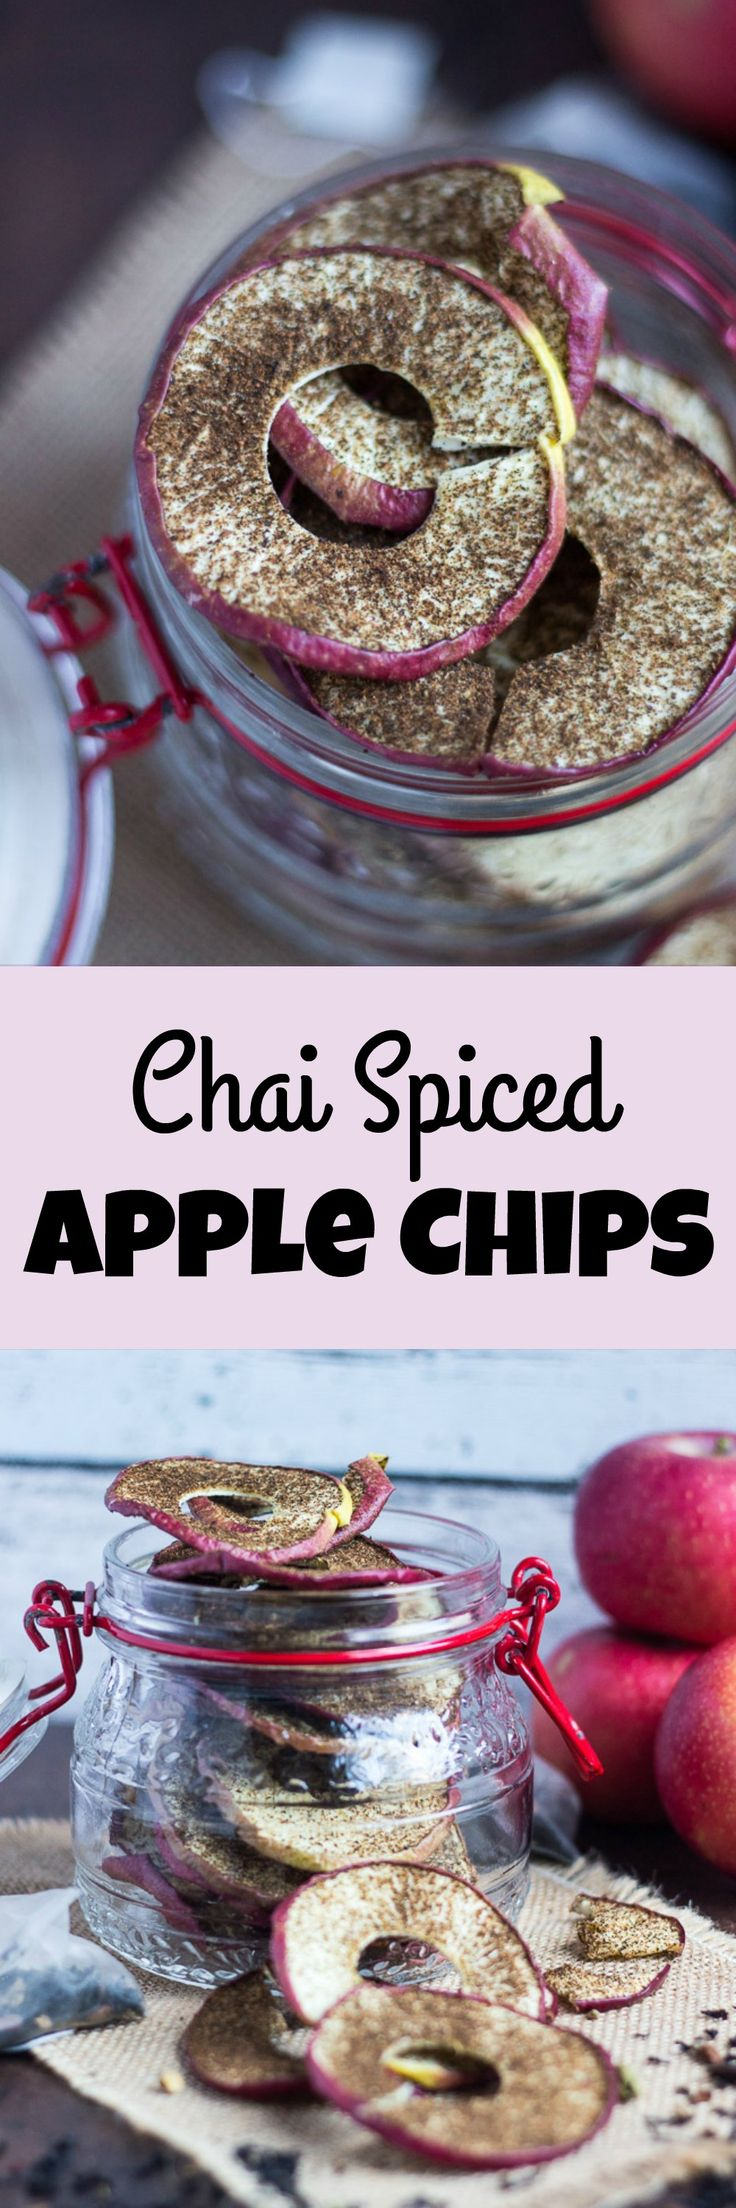 Chai Spiced Apple Chips. Sugar free yet full of flavour, these are perfect for a healthy snack on the run.